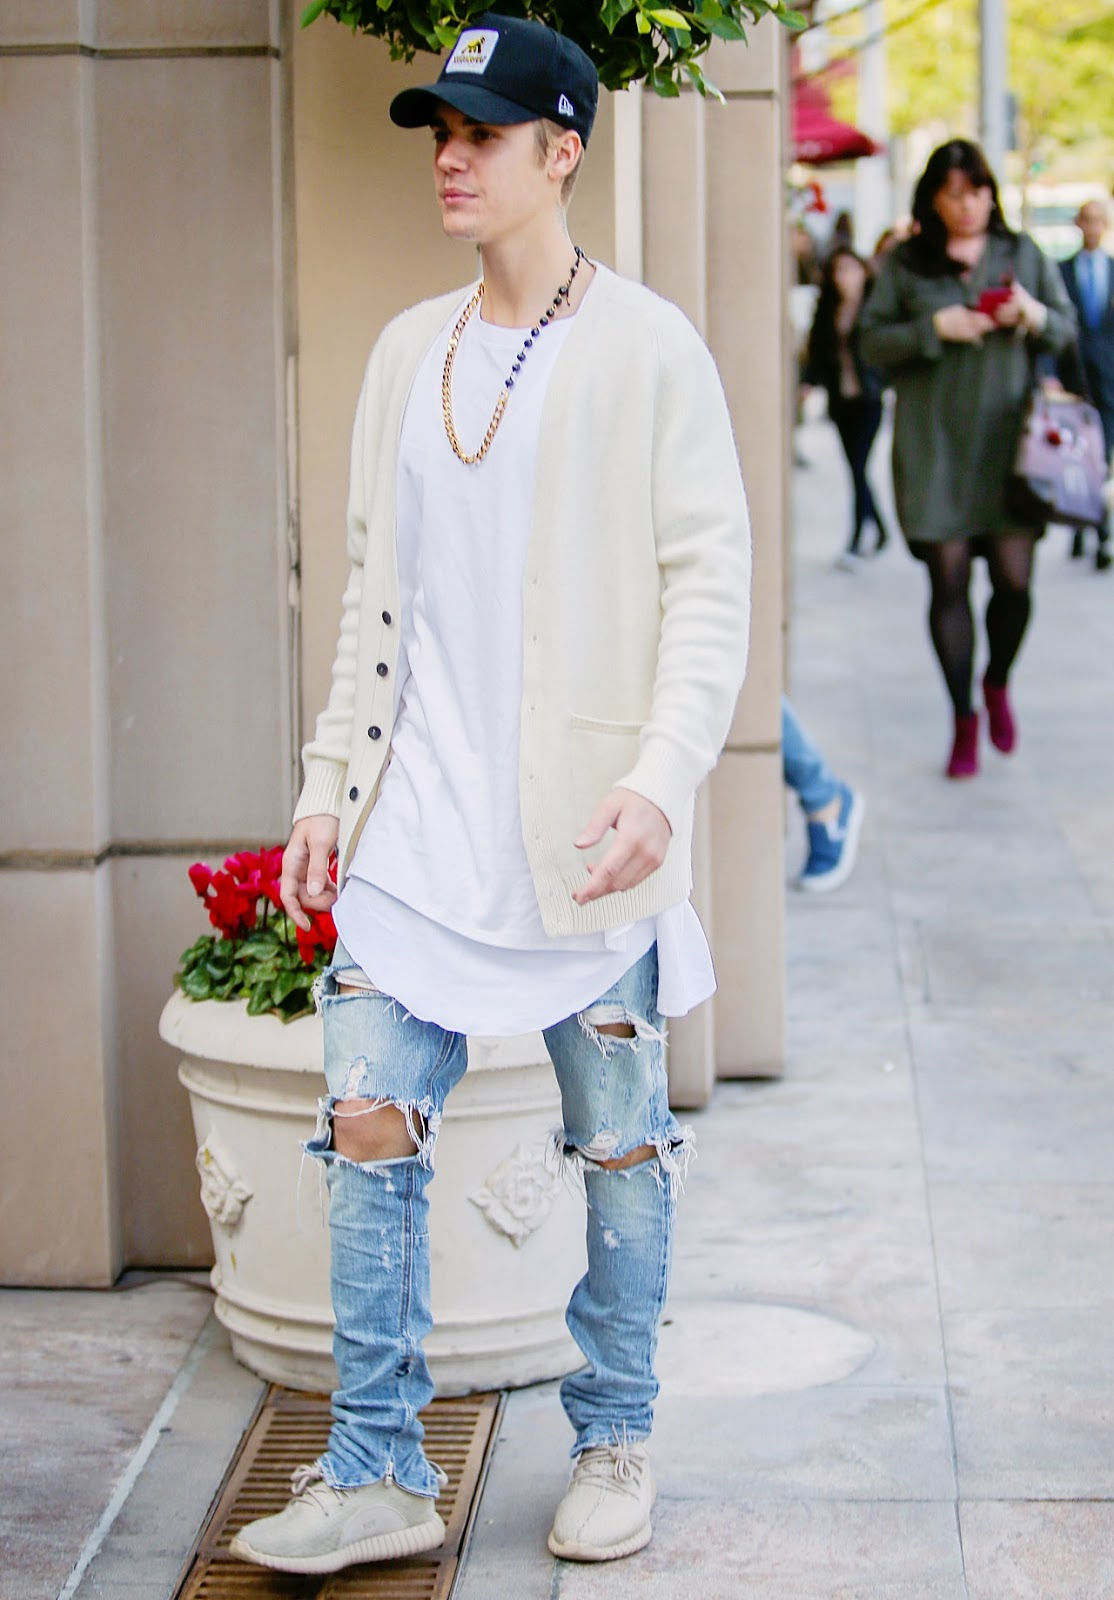 16 Streetwear Pics That You Could Learn From Justin Bieber Trashsnob